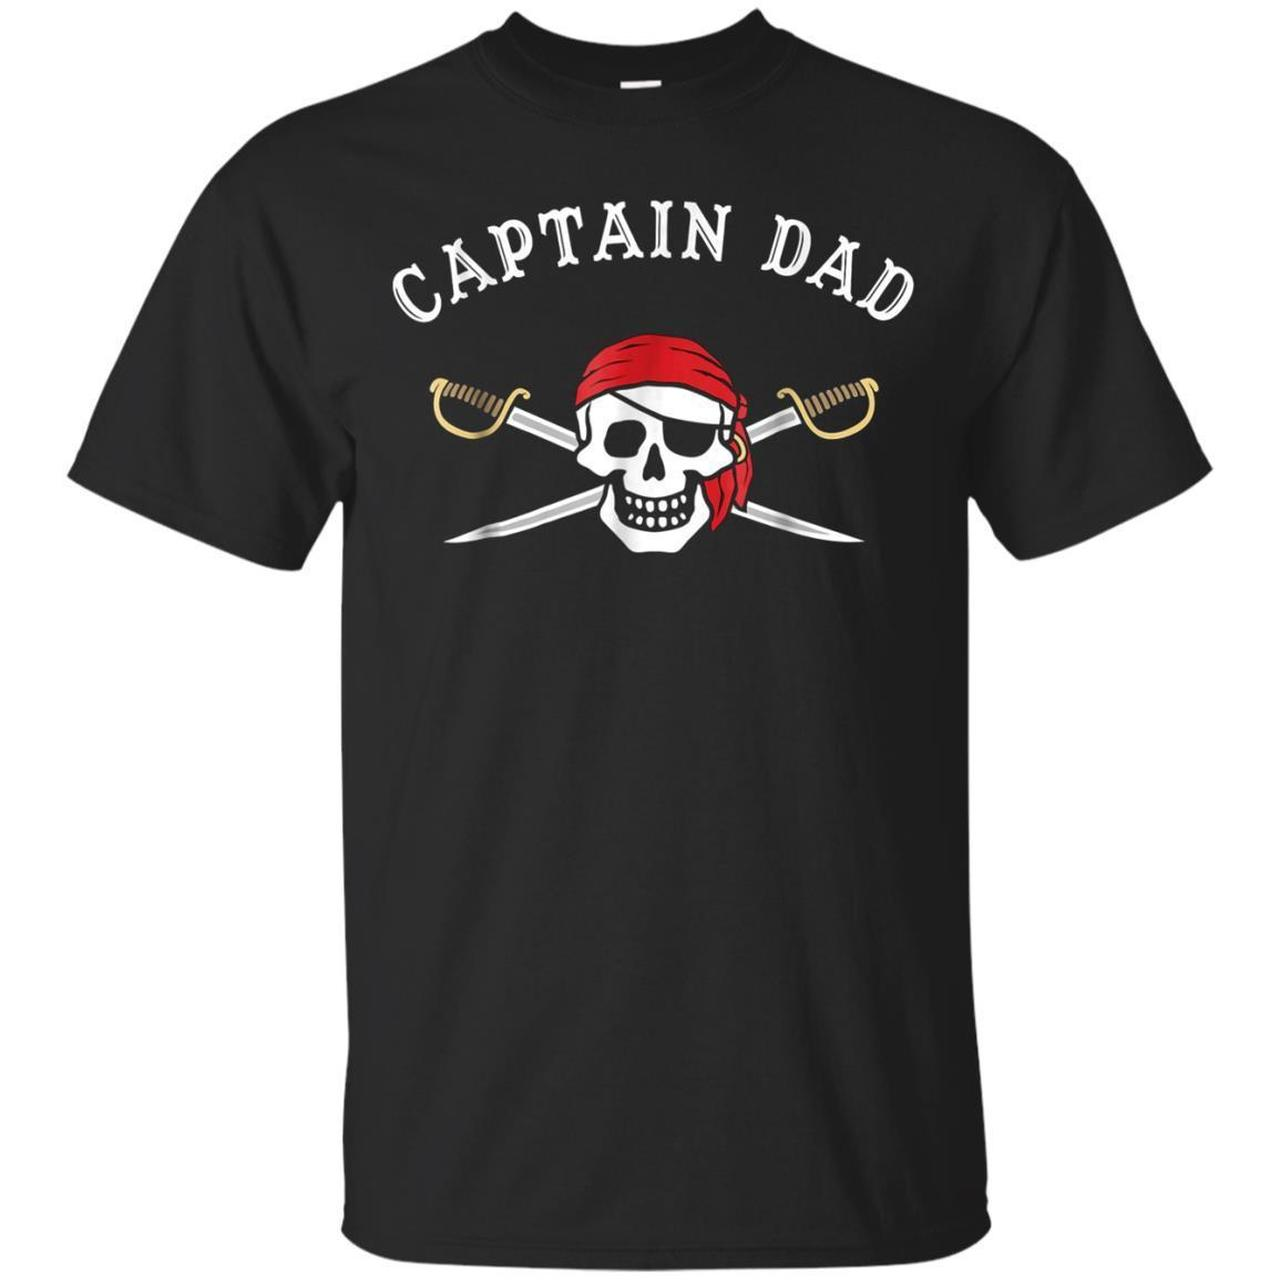 Captain Dad Funny Pirate 1252233802 Shirts